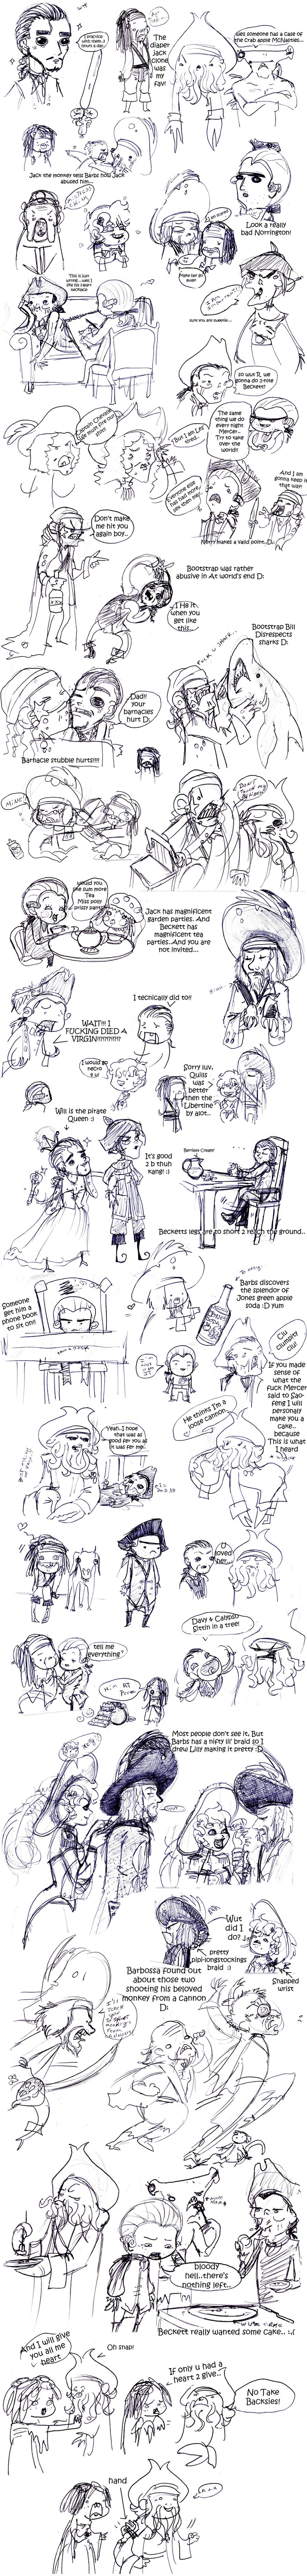 POTC: AWE sketch dump 4 by OhSadface